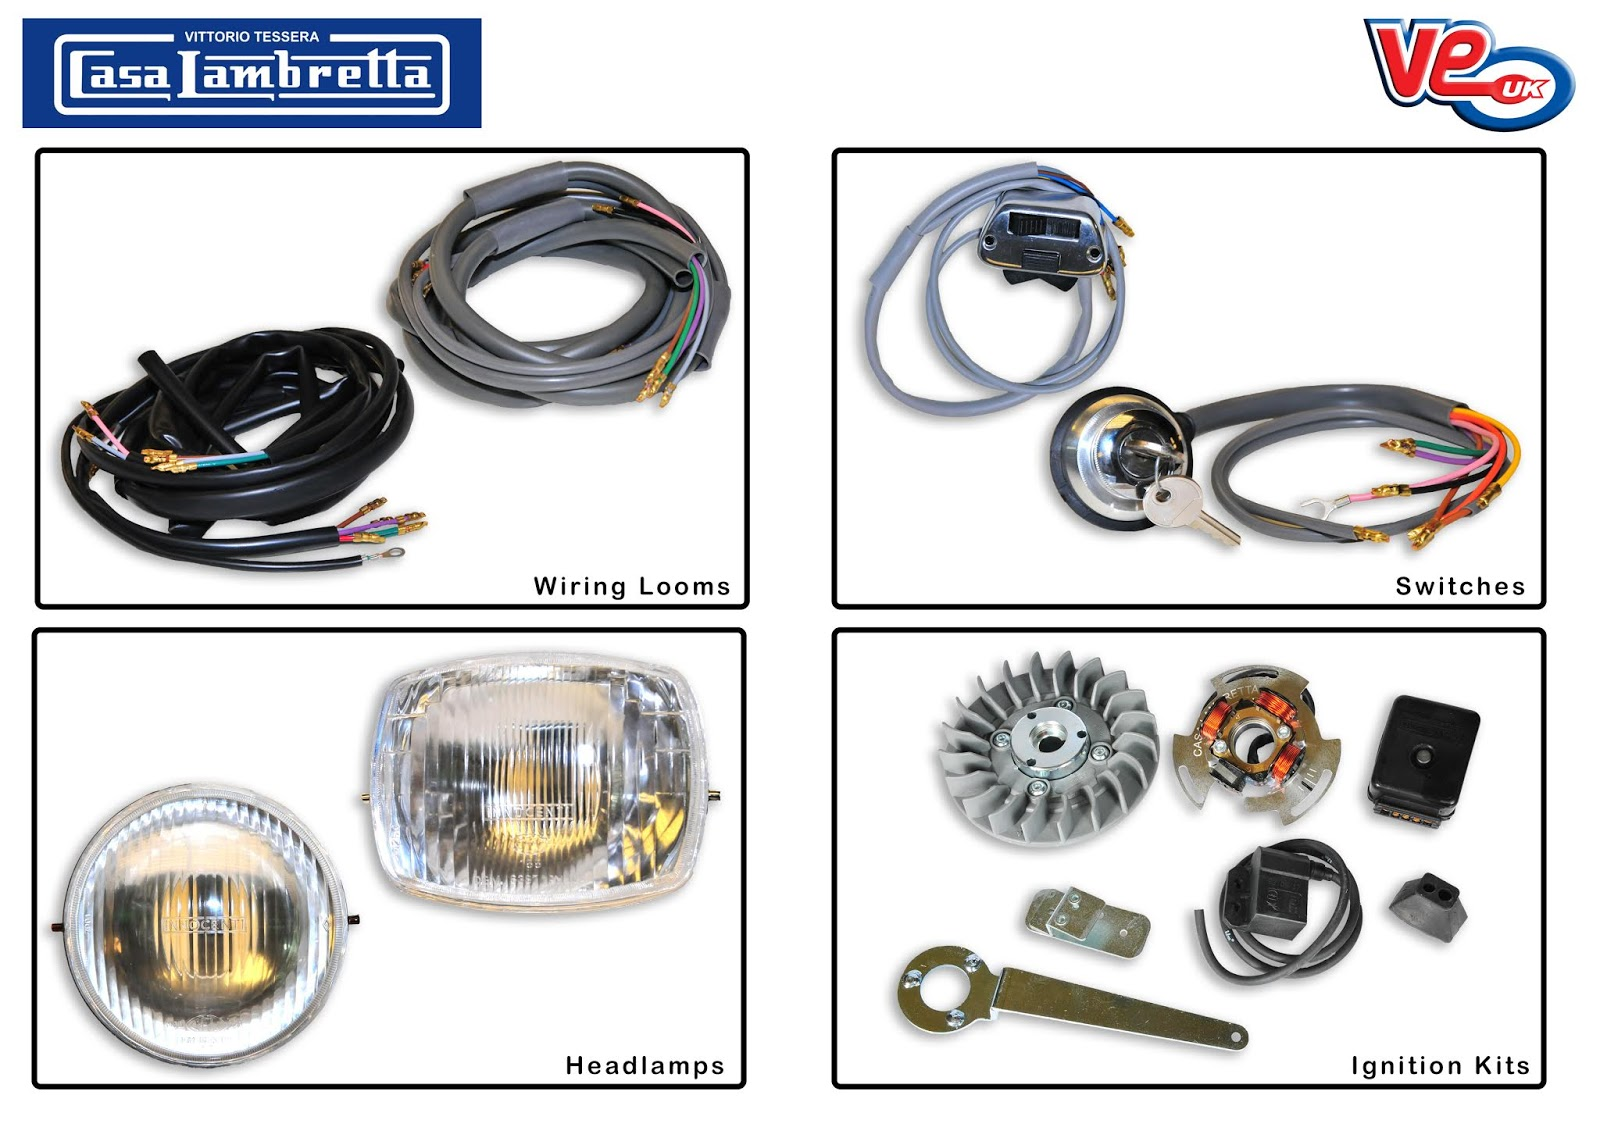 Casa Lambretta Electrical Parts